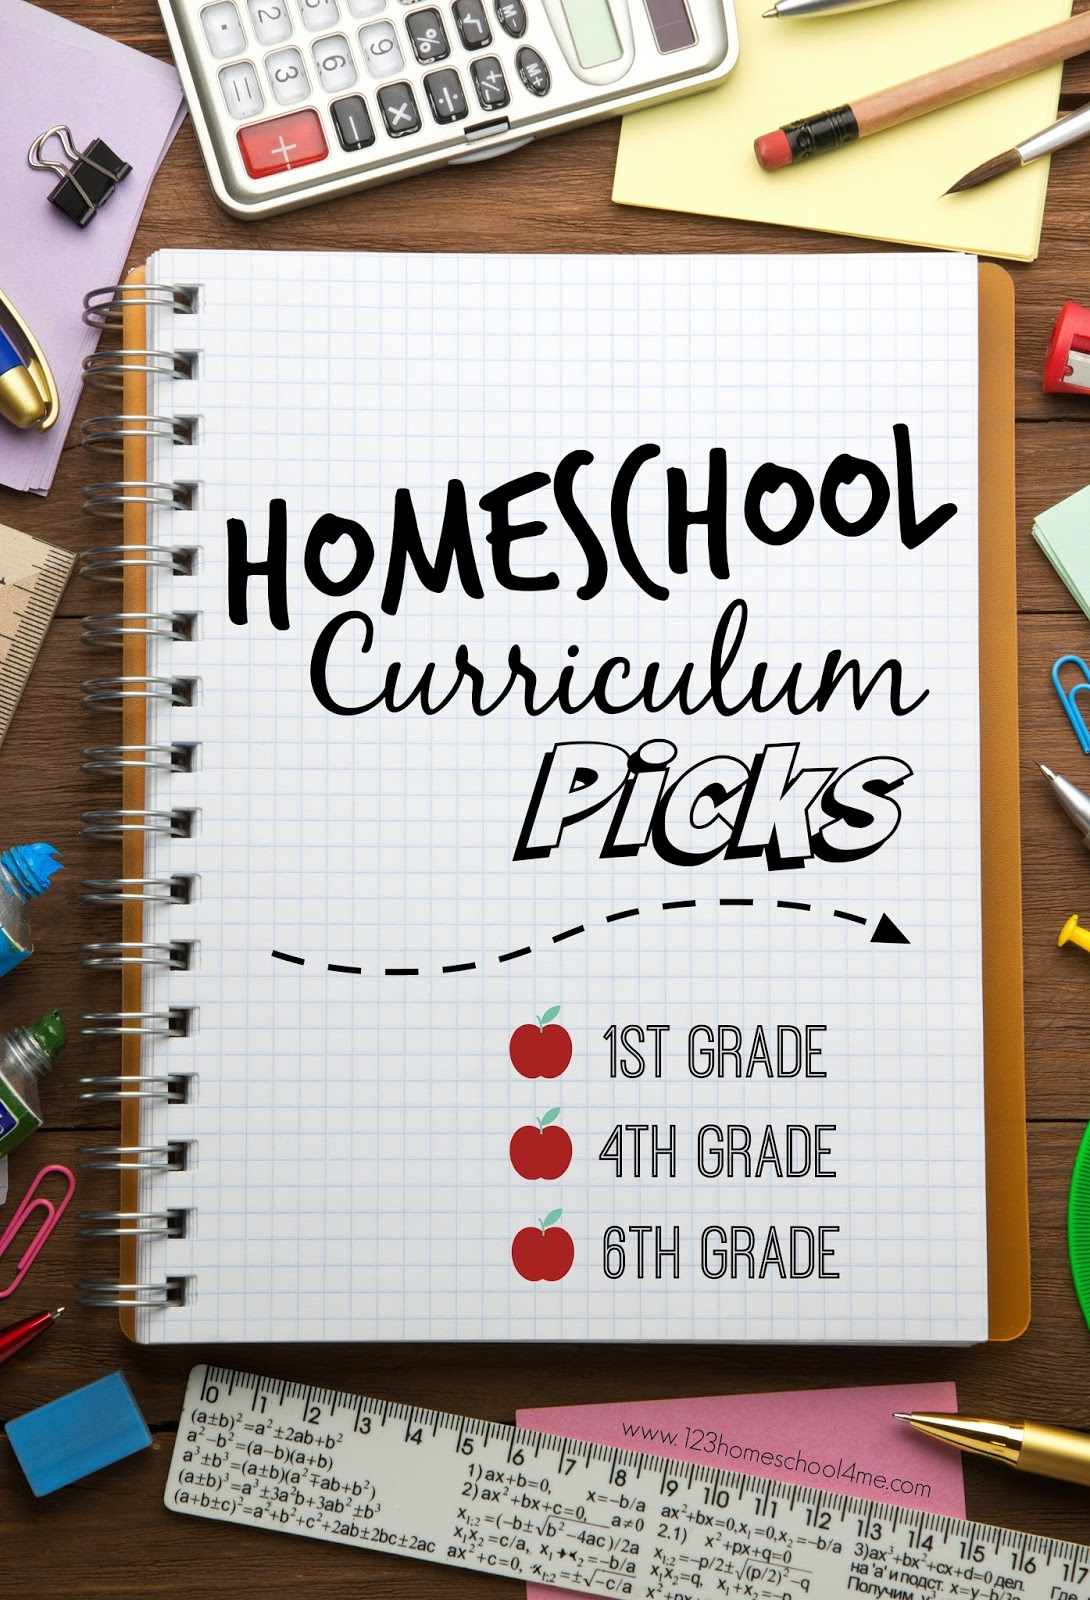 Our Curriculum Picks 1st 4th 6th Grade